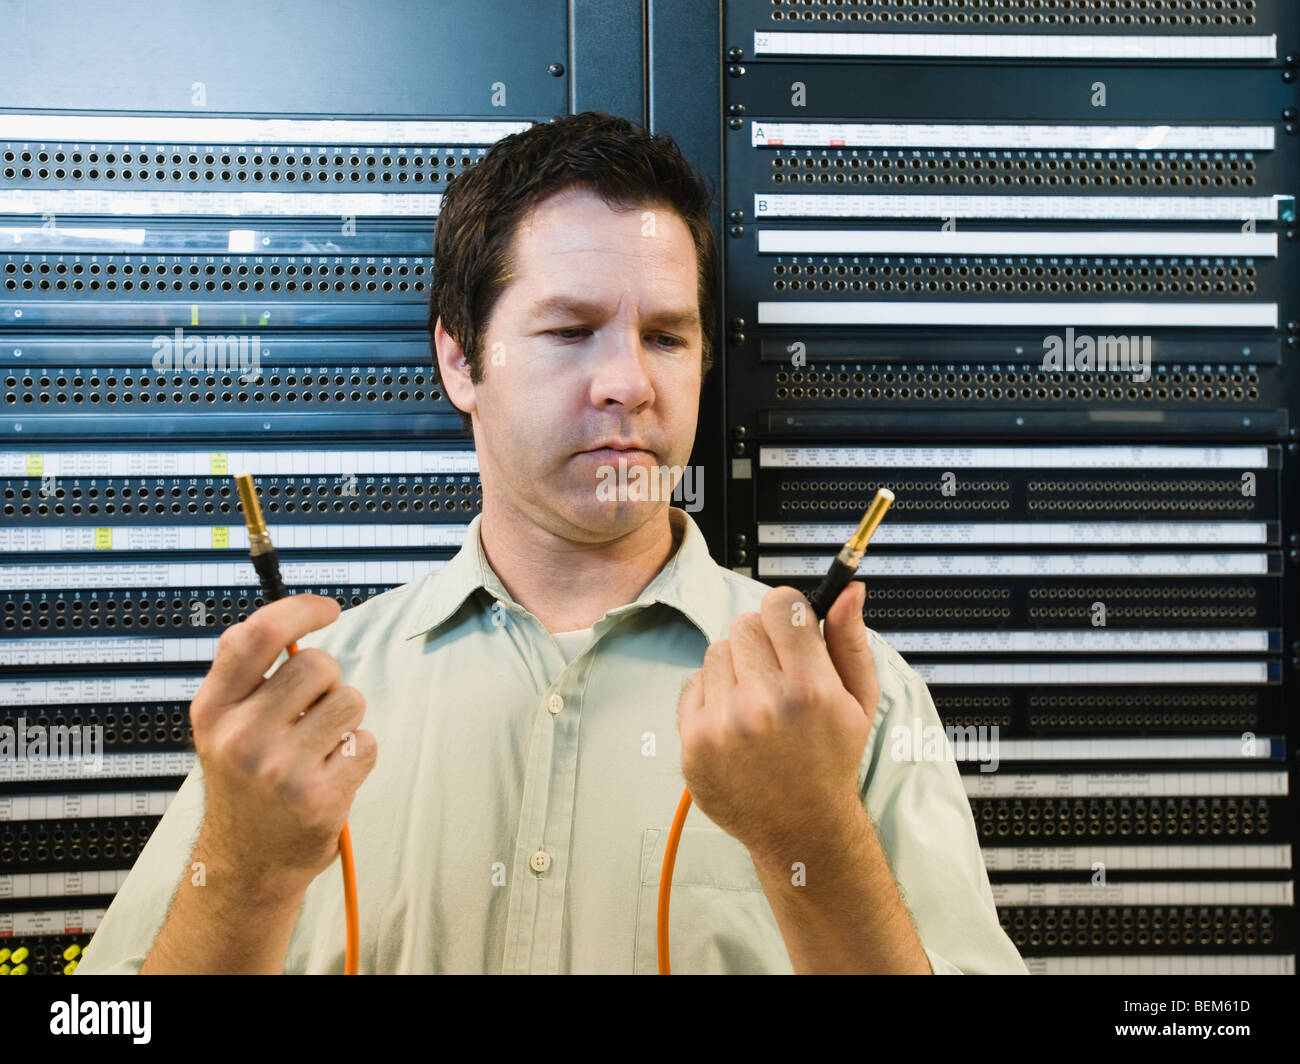 Man working in data center - Stock Image